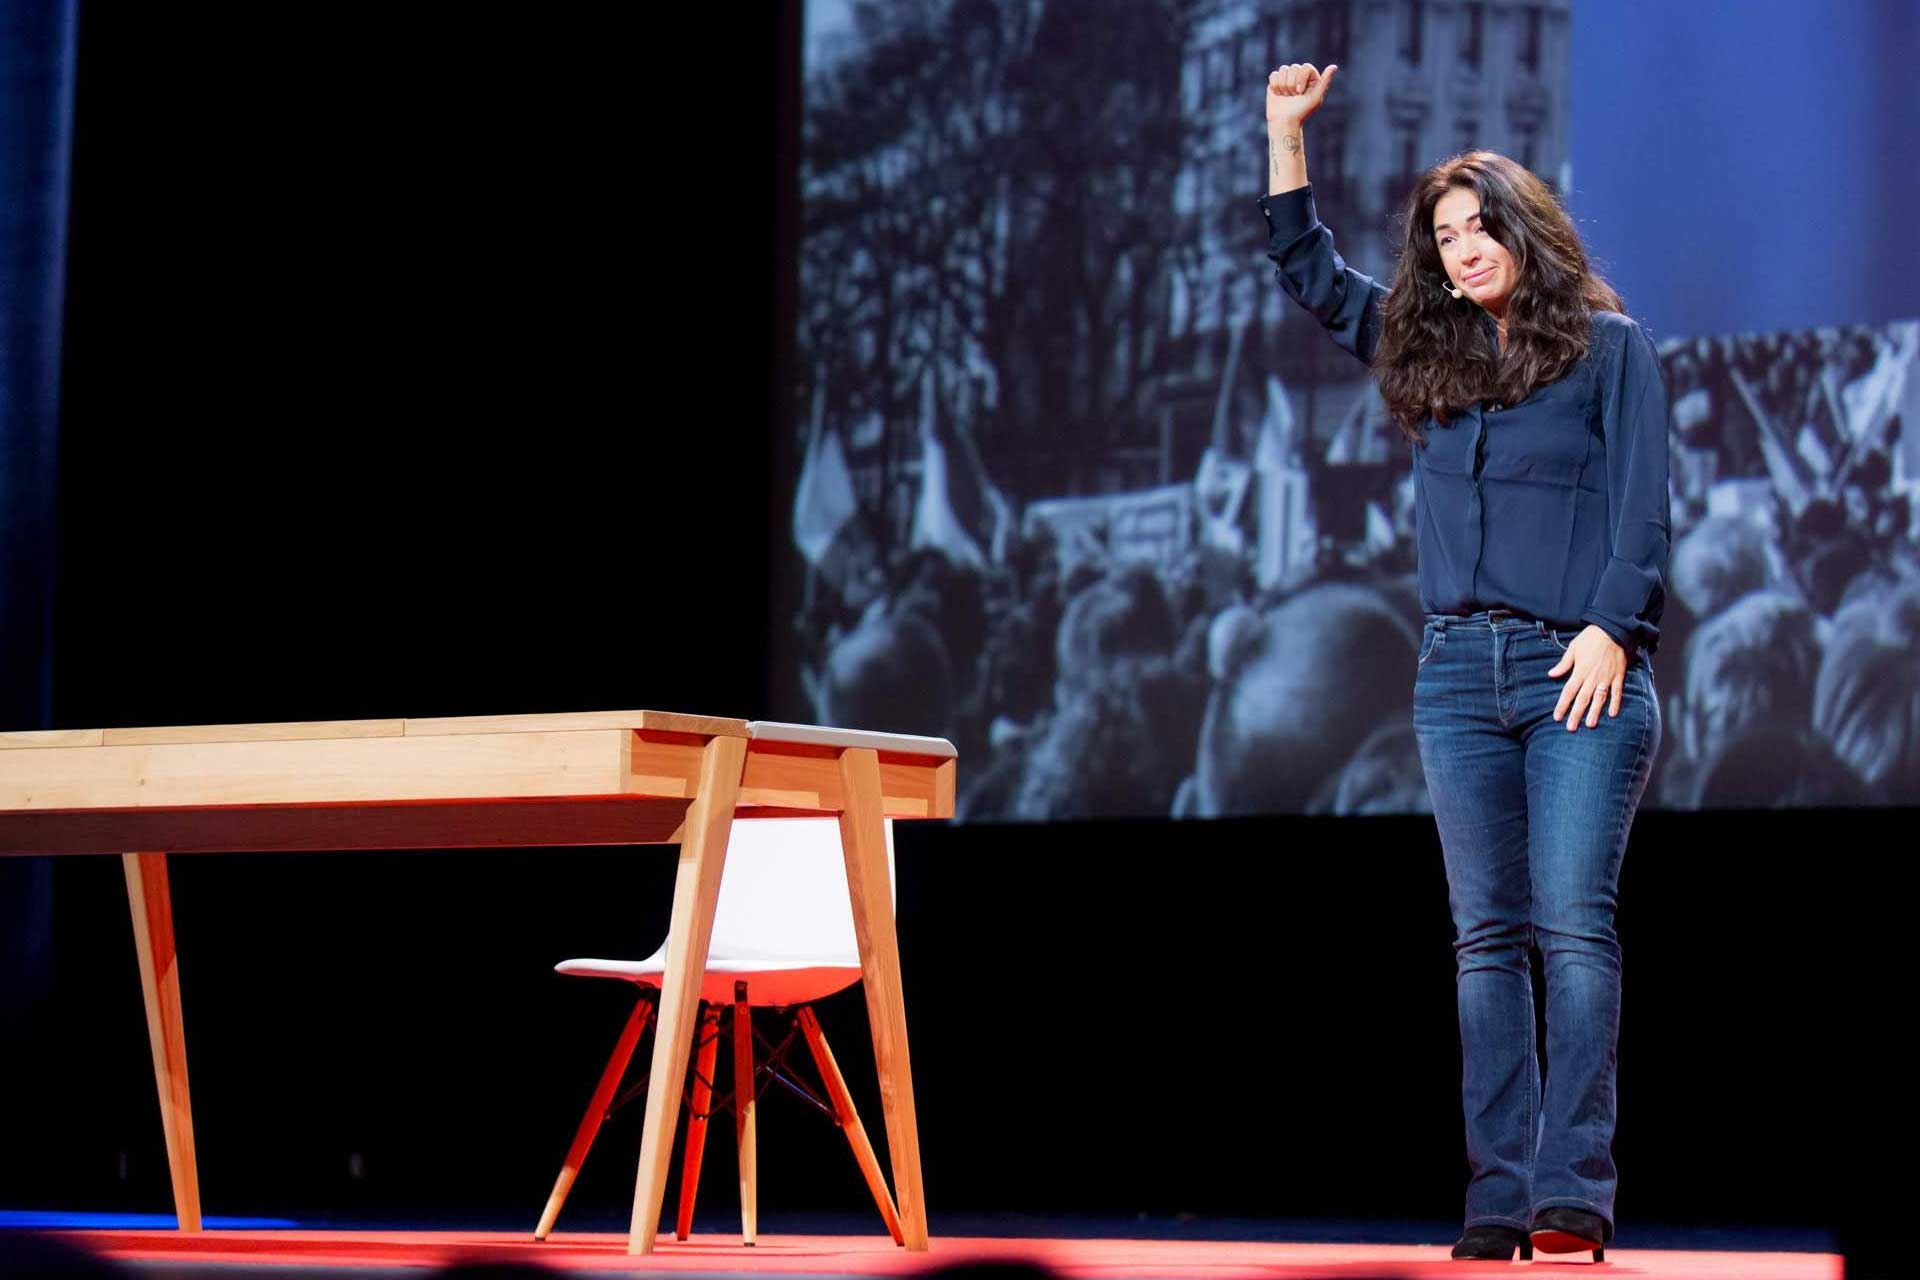 conference-TEDxParis-2015-3.jpg